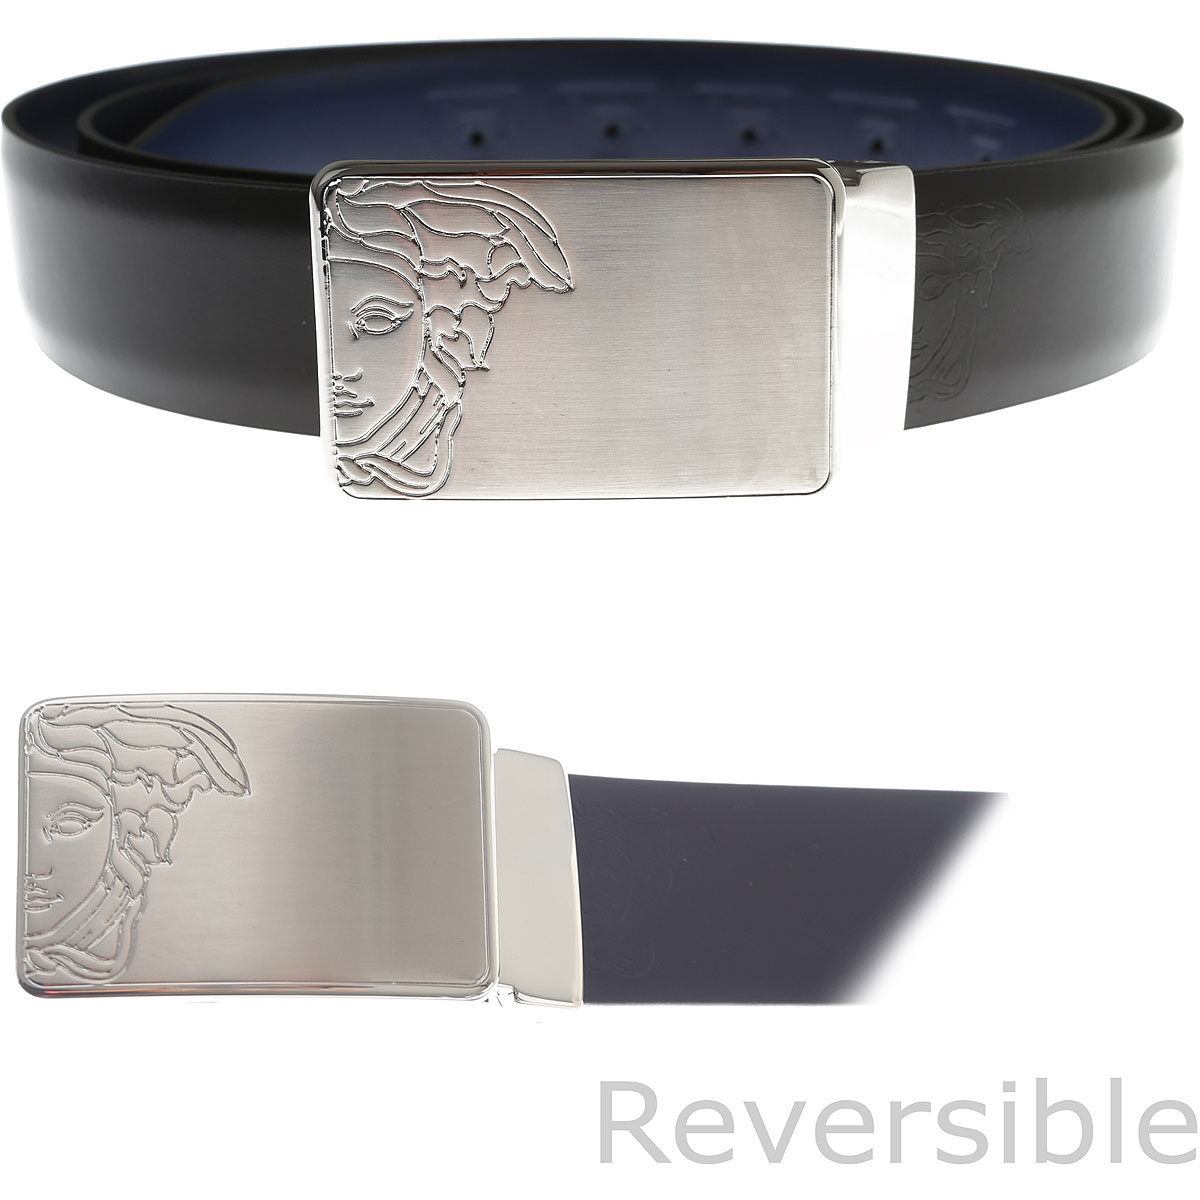 Image of Gianni Versace Belts, Reversible, Black, Leather, 2017